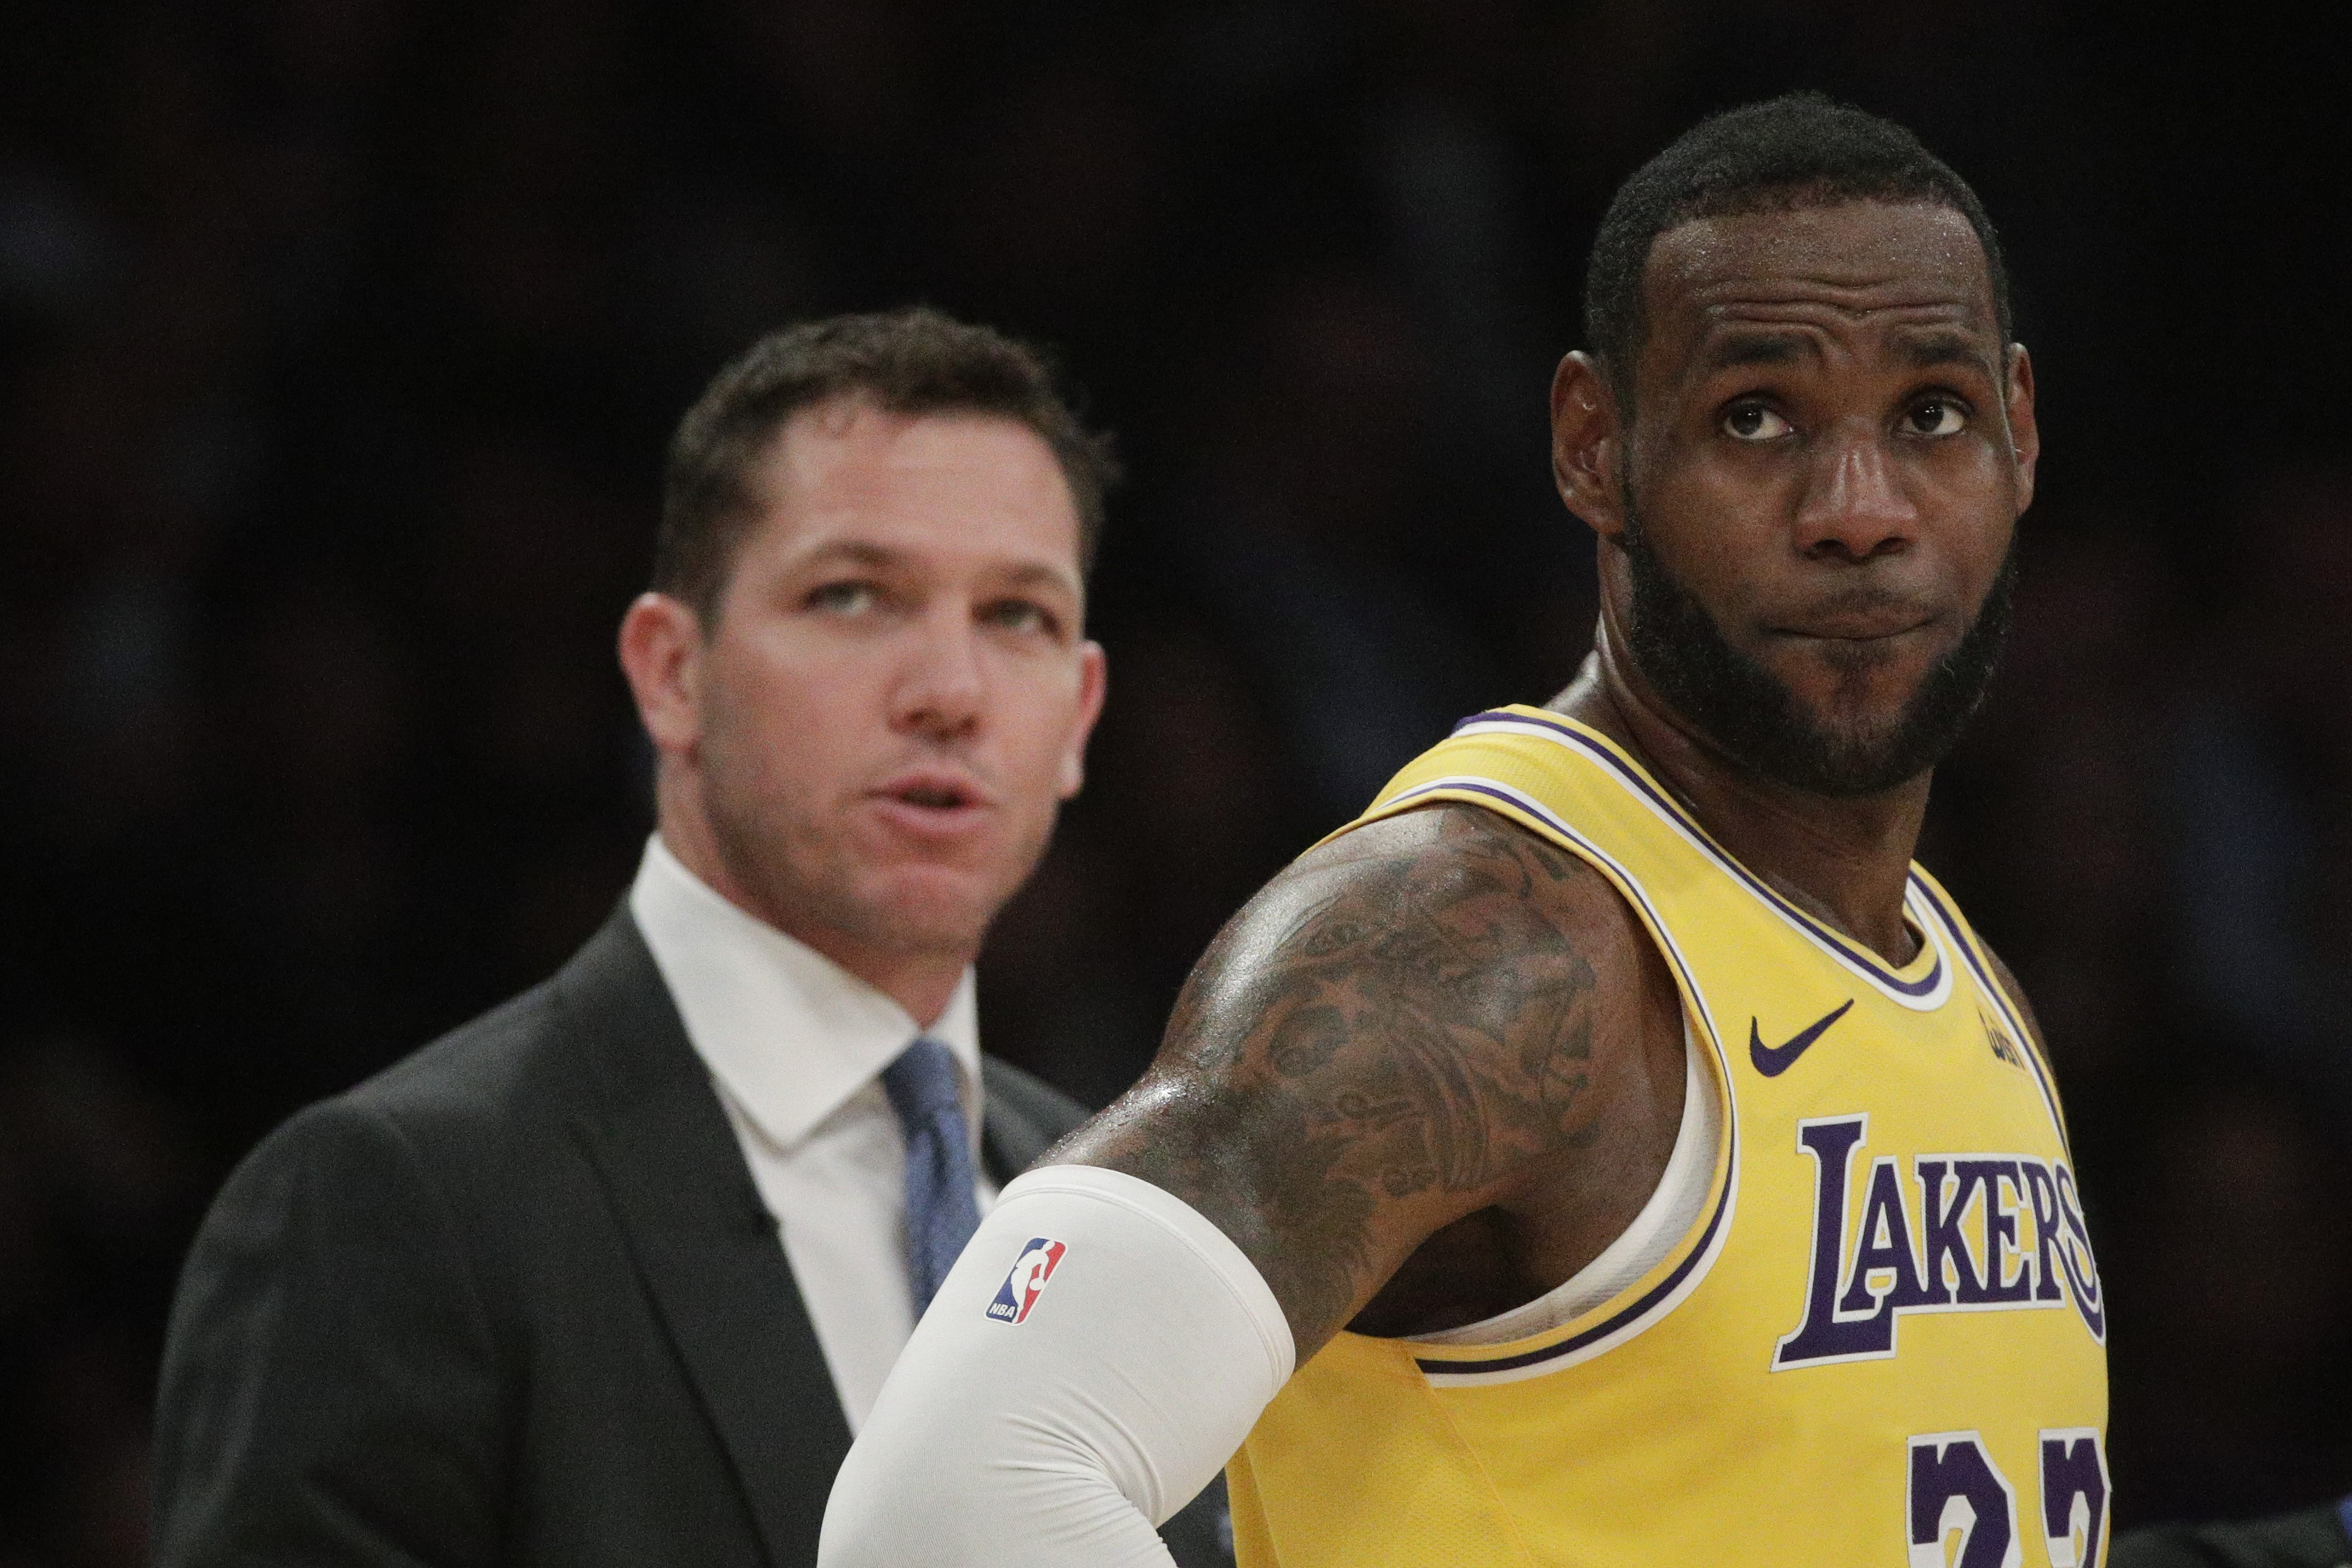 edaec1fd9 Sacramento Kings coach Luke Walton sued for sexual assault after reporter  allegations